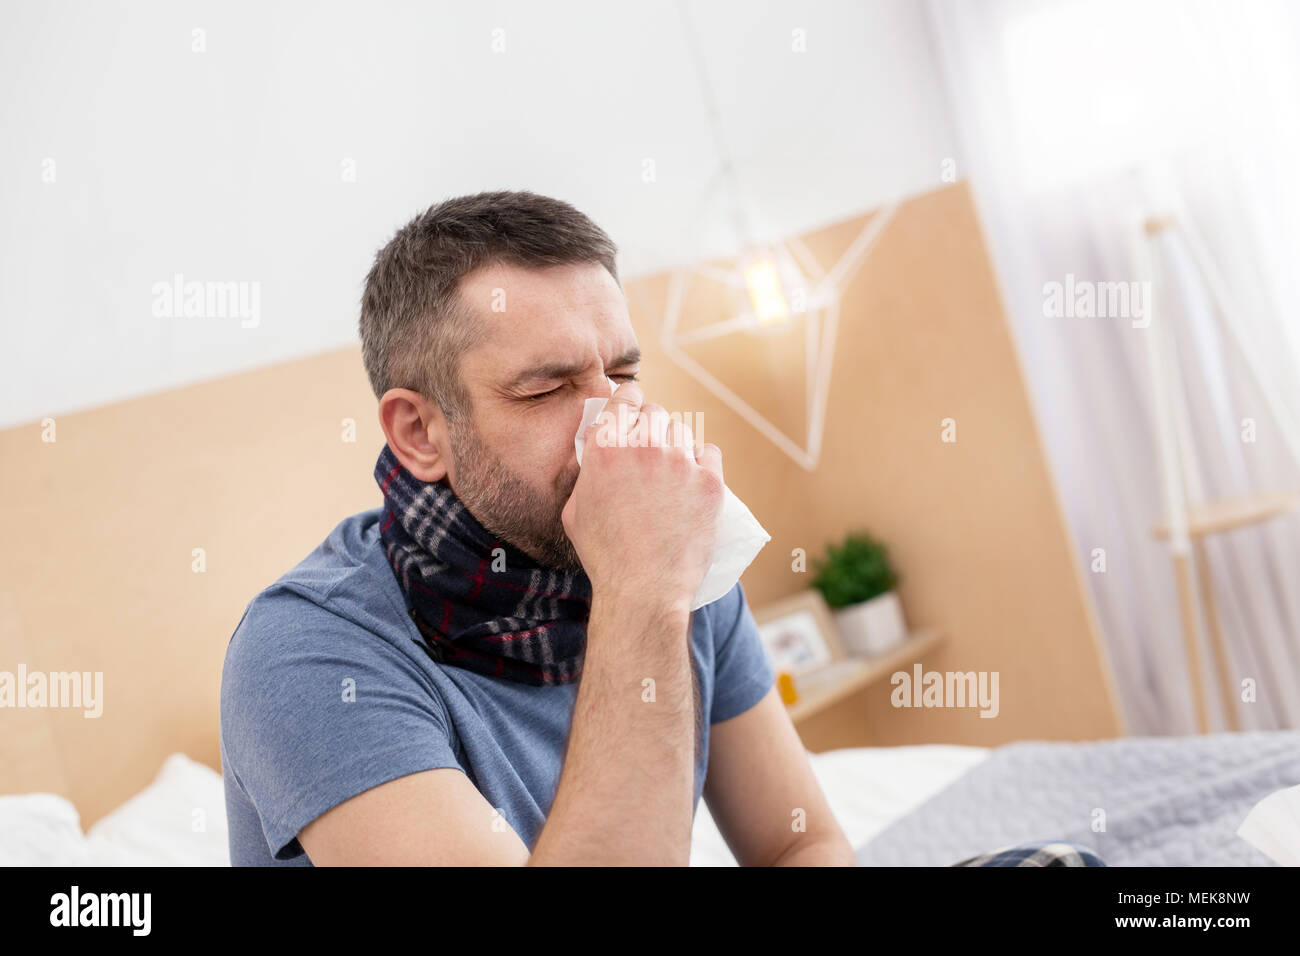 Sick man blowing his nose - Stock Image